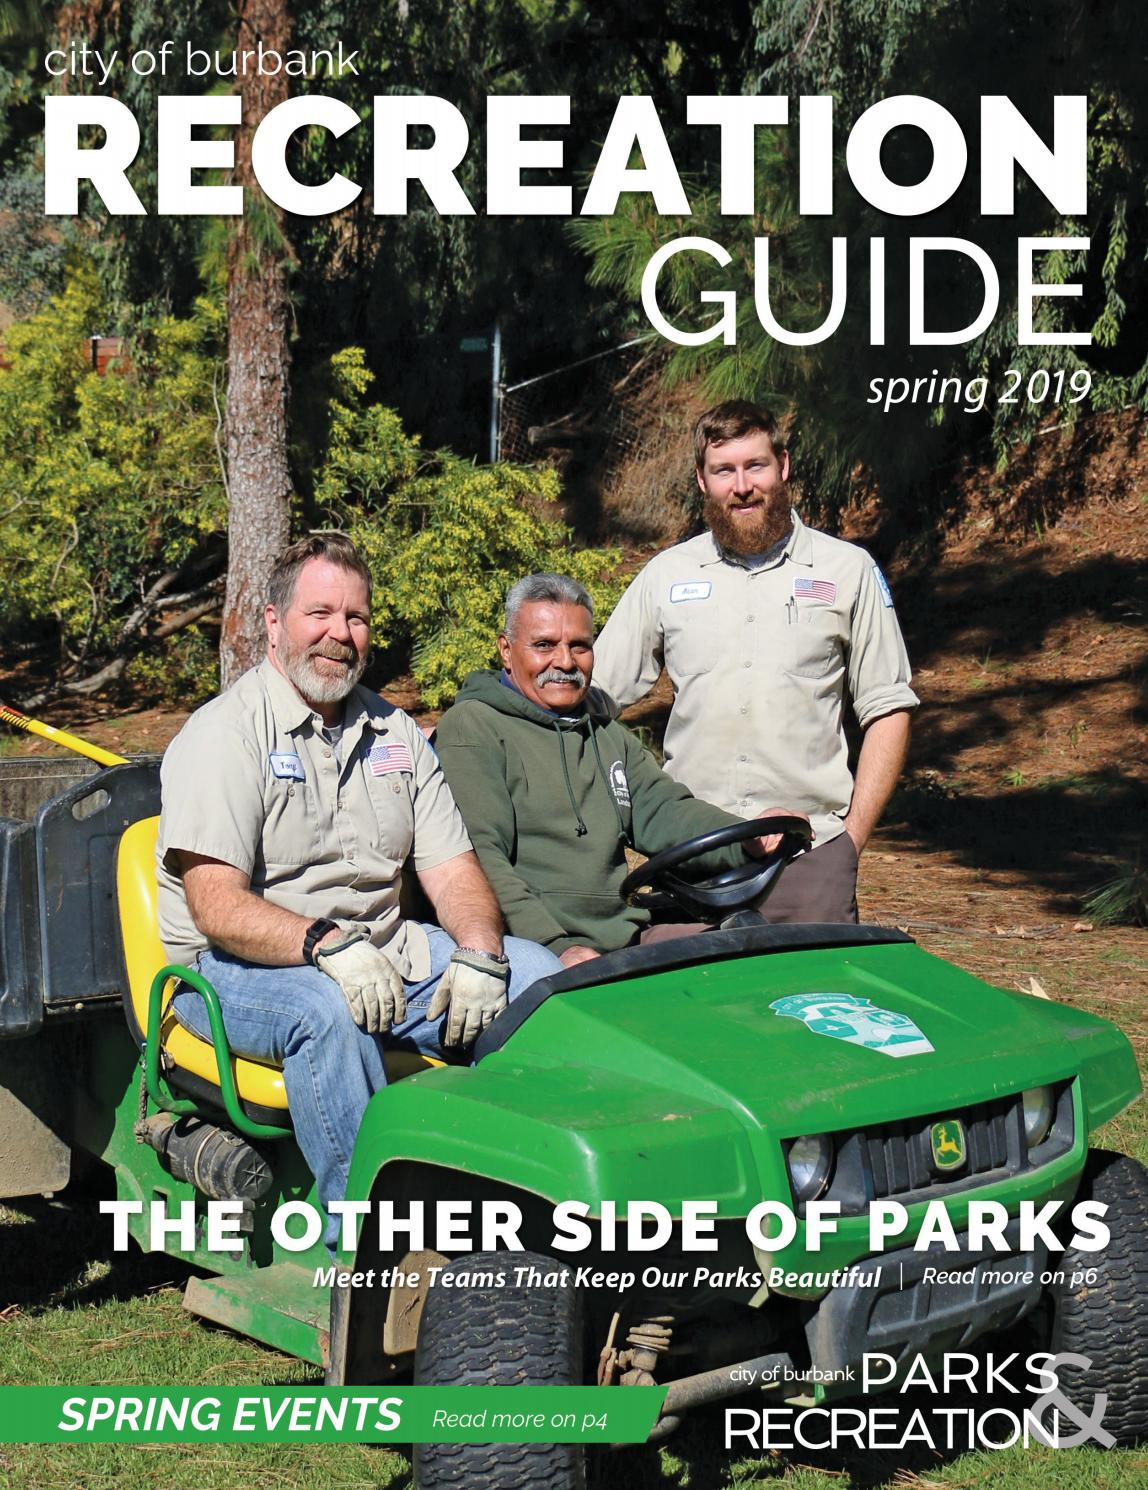 2019 Burbank Spring Recreation Guide by Burbank Parks and Recreation